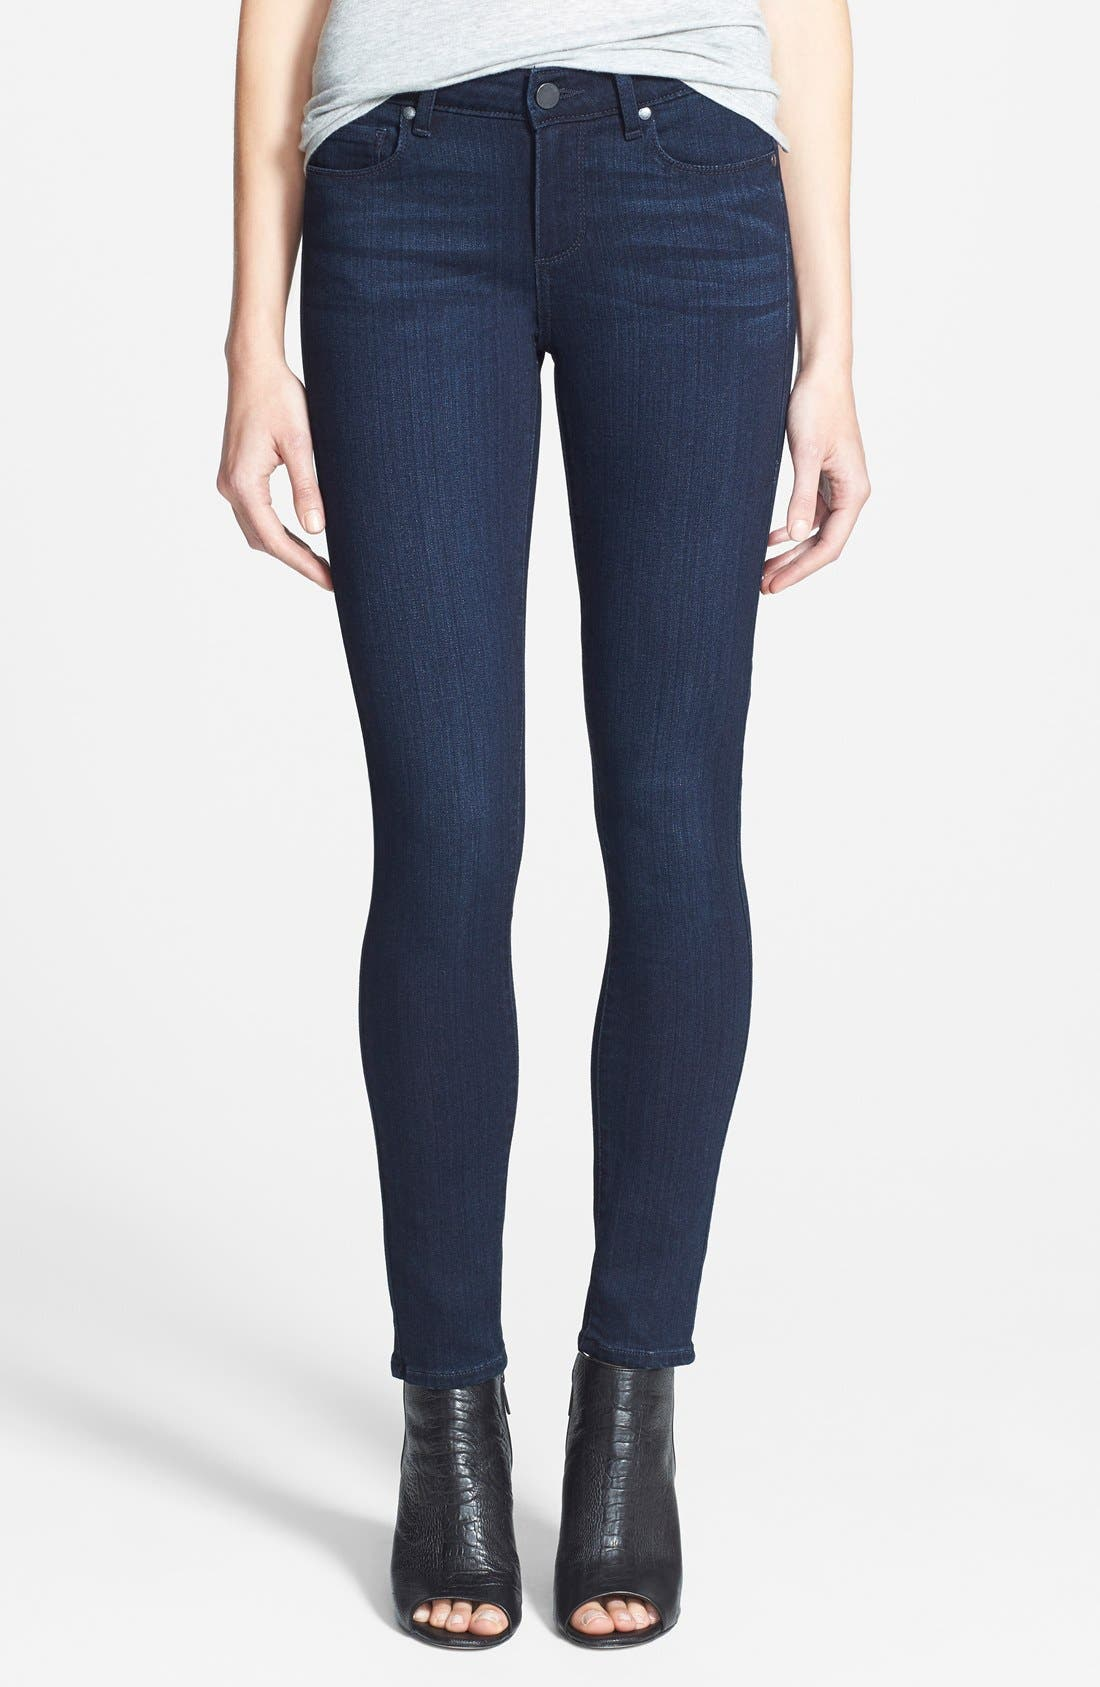 Alternate Image 1 Selected - PAIGE Transcend - Verdugo Ankle Jeans (Mae)